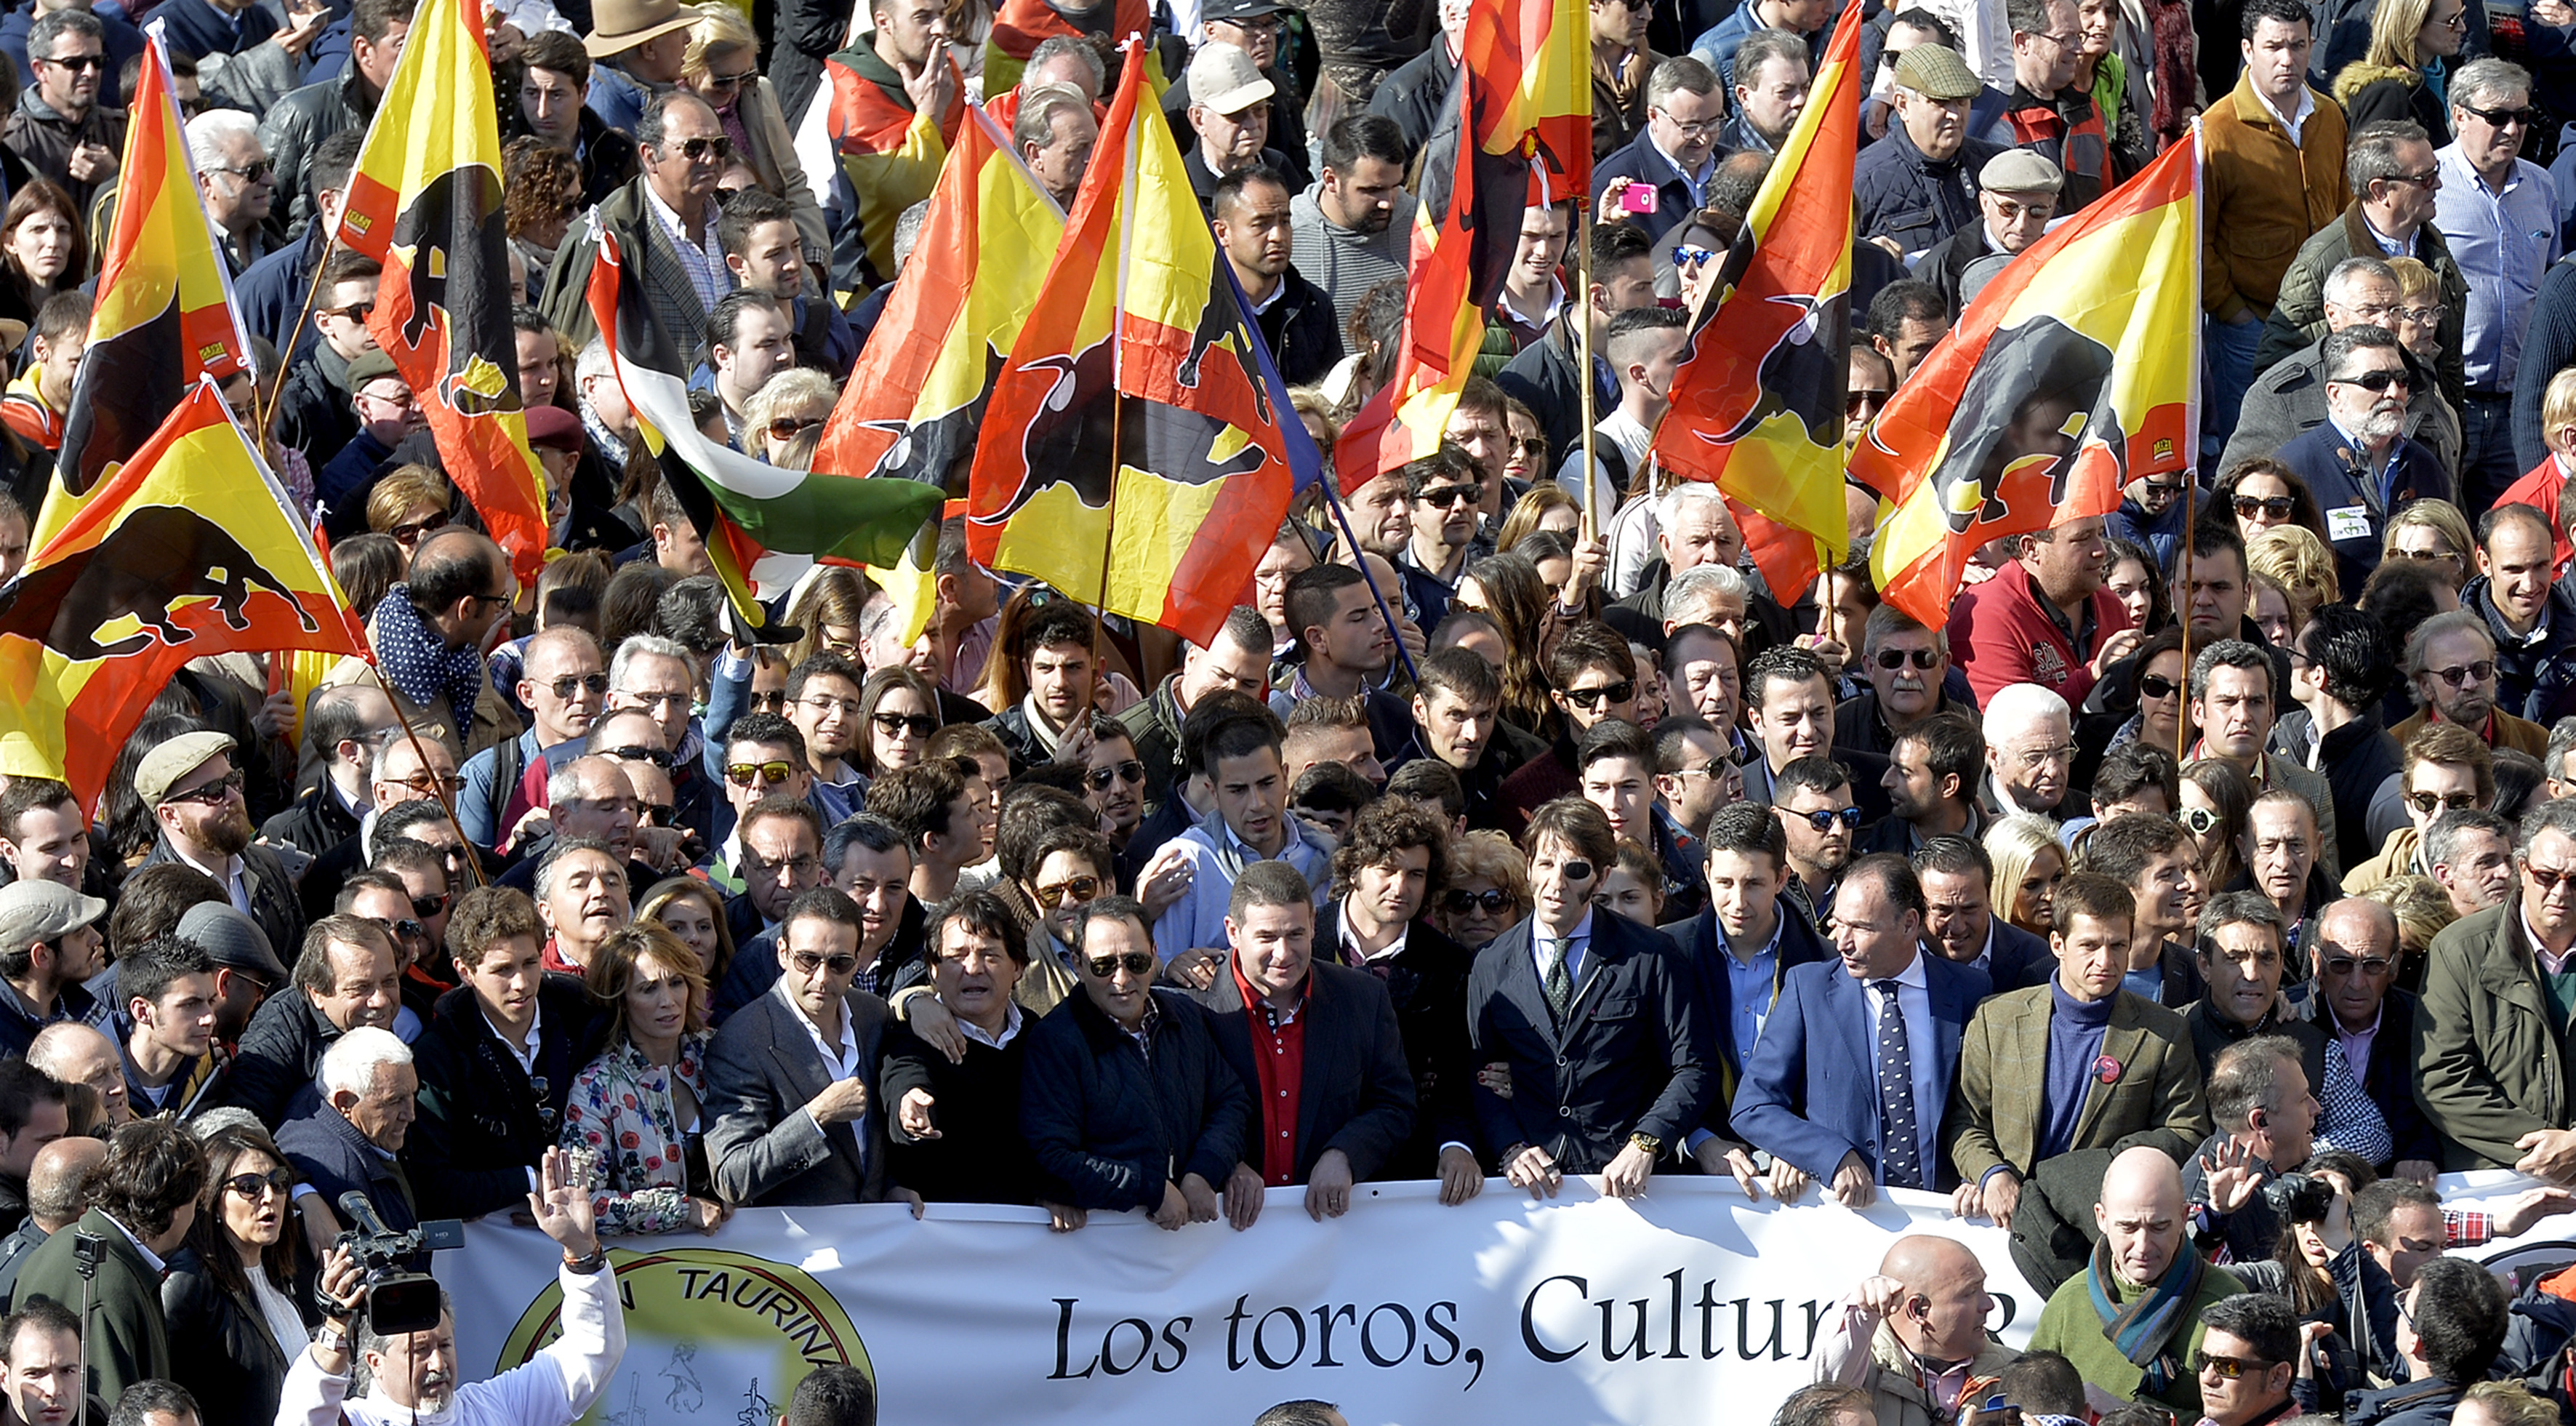 Pro-bullfighting supporters wave flags adorned with bull image as they demonstrate during the Fallas Festival in Valencia on March 13, 2016